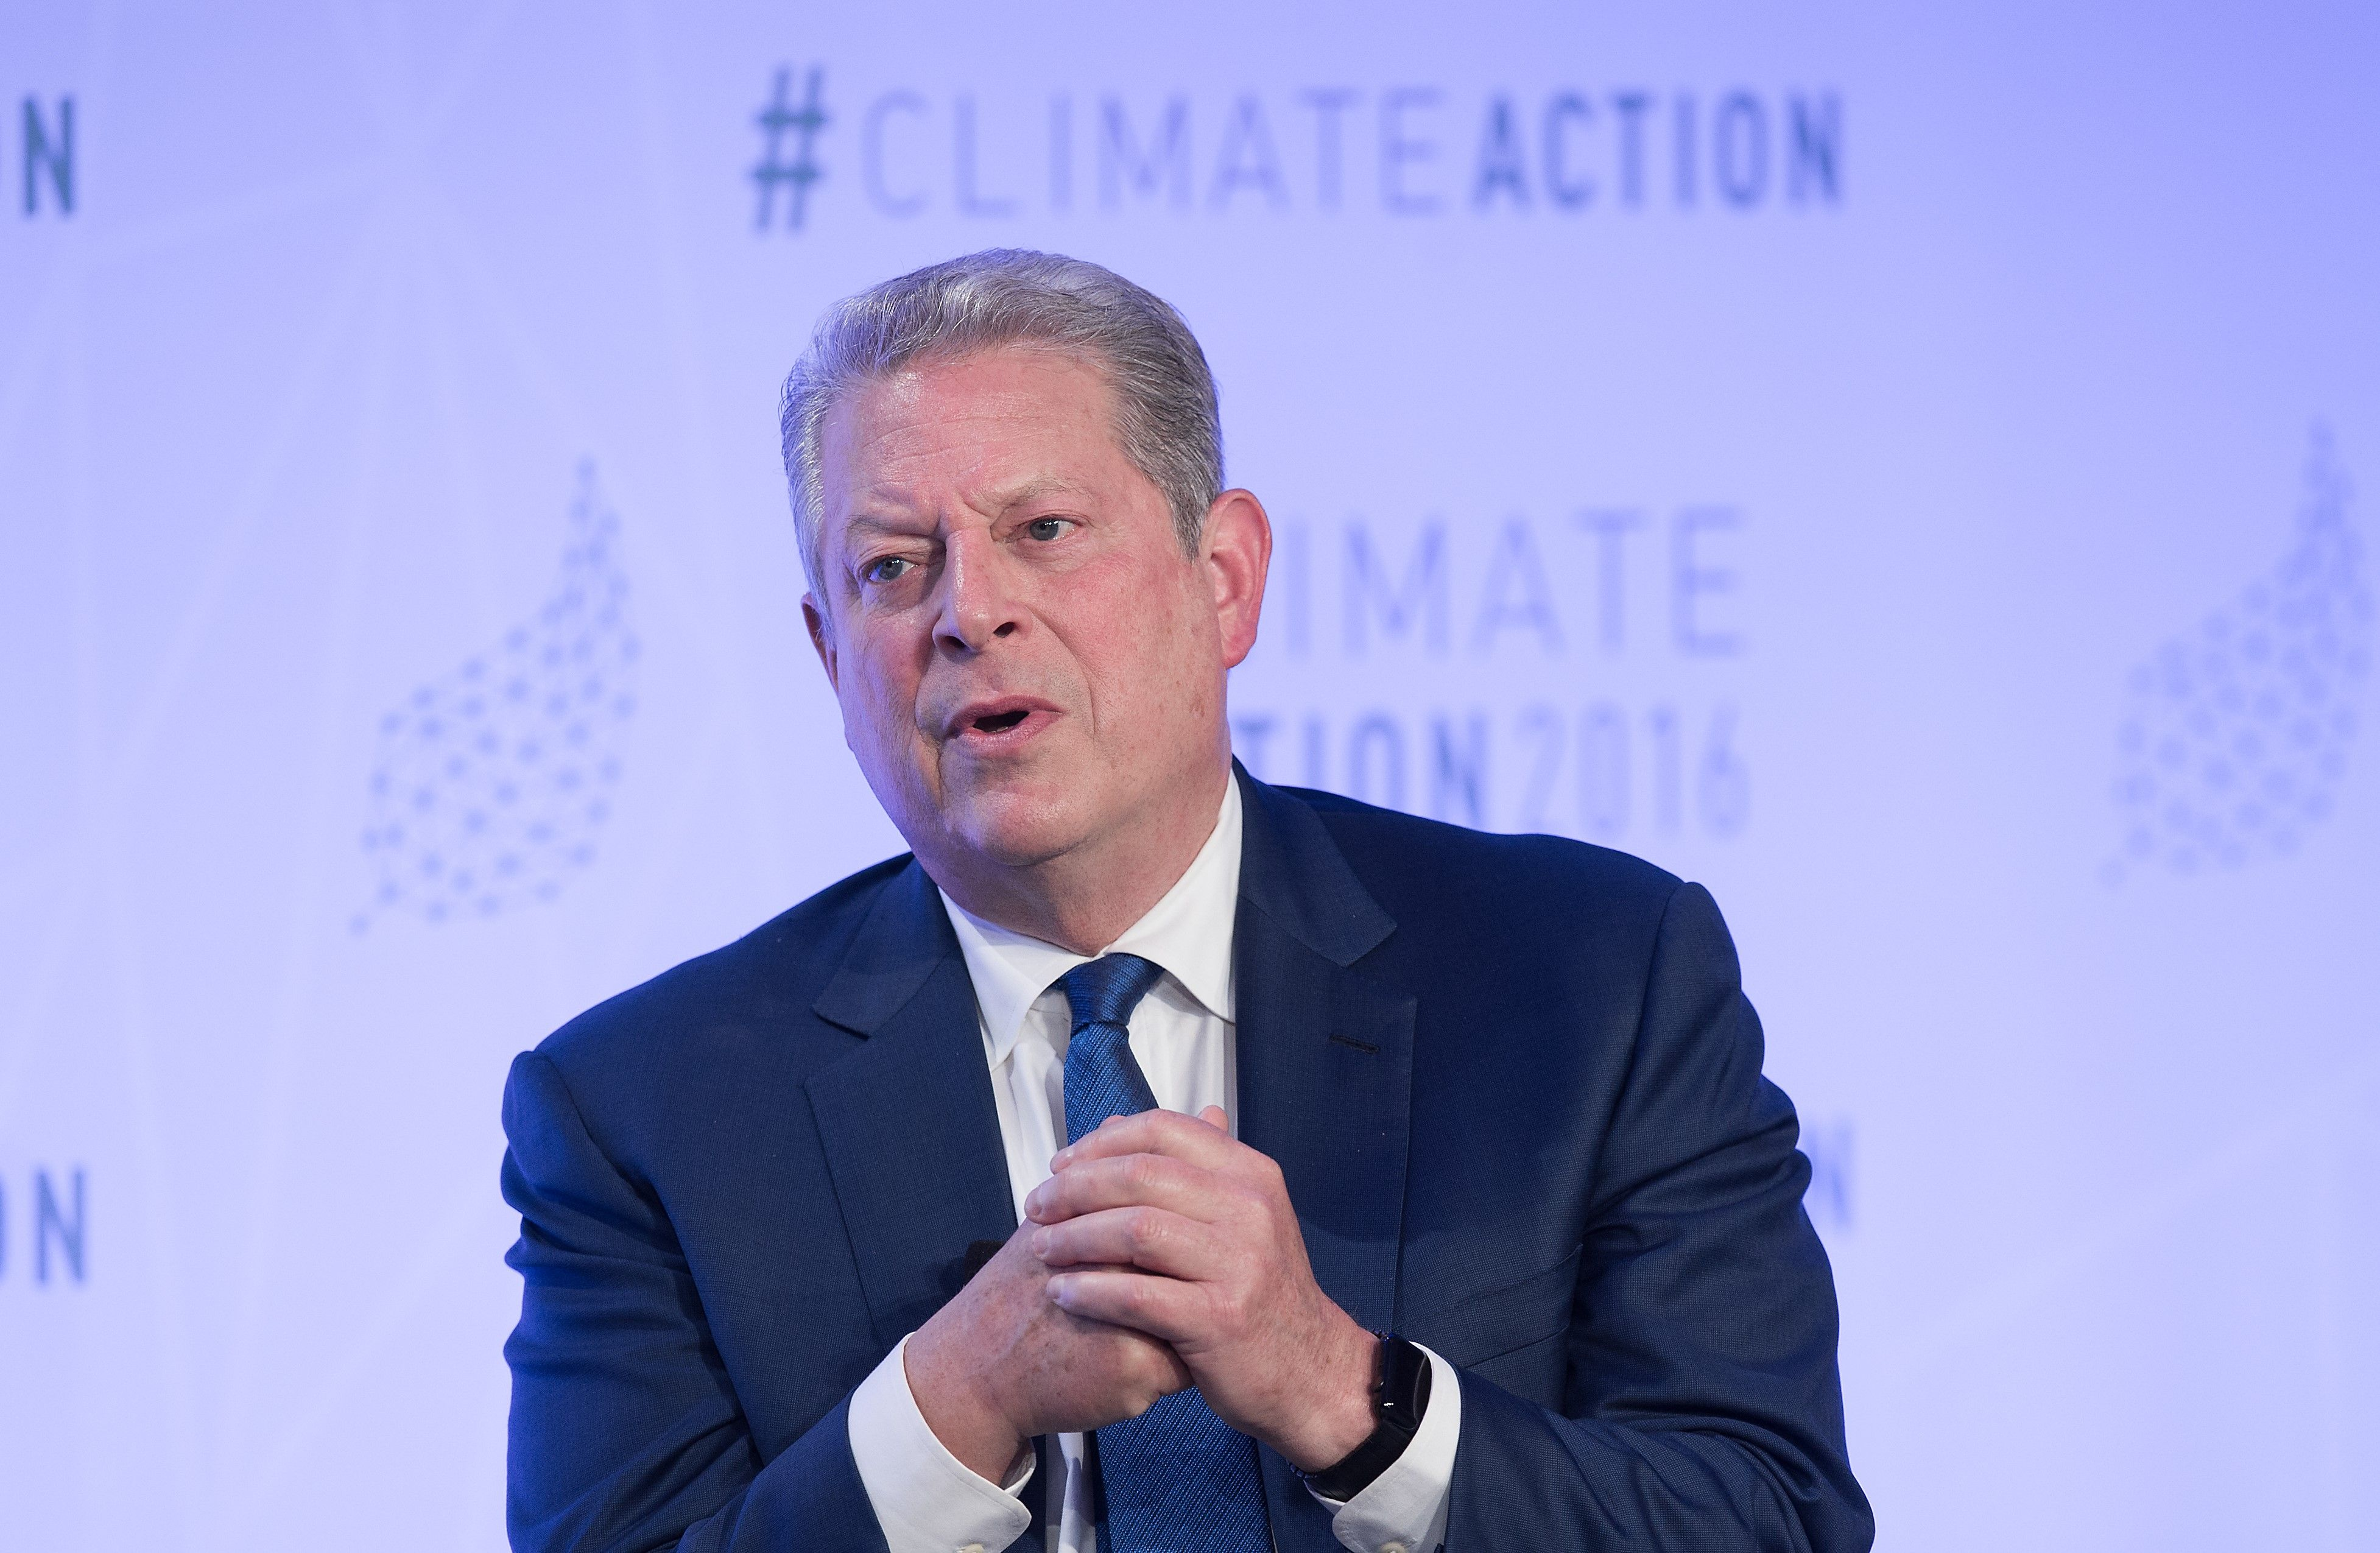 Al Gore is one of the richest vice presidents of all time.